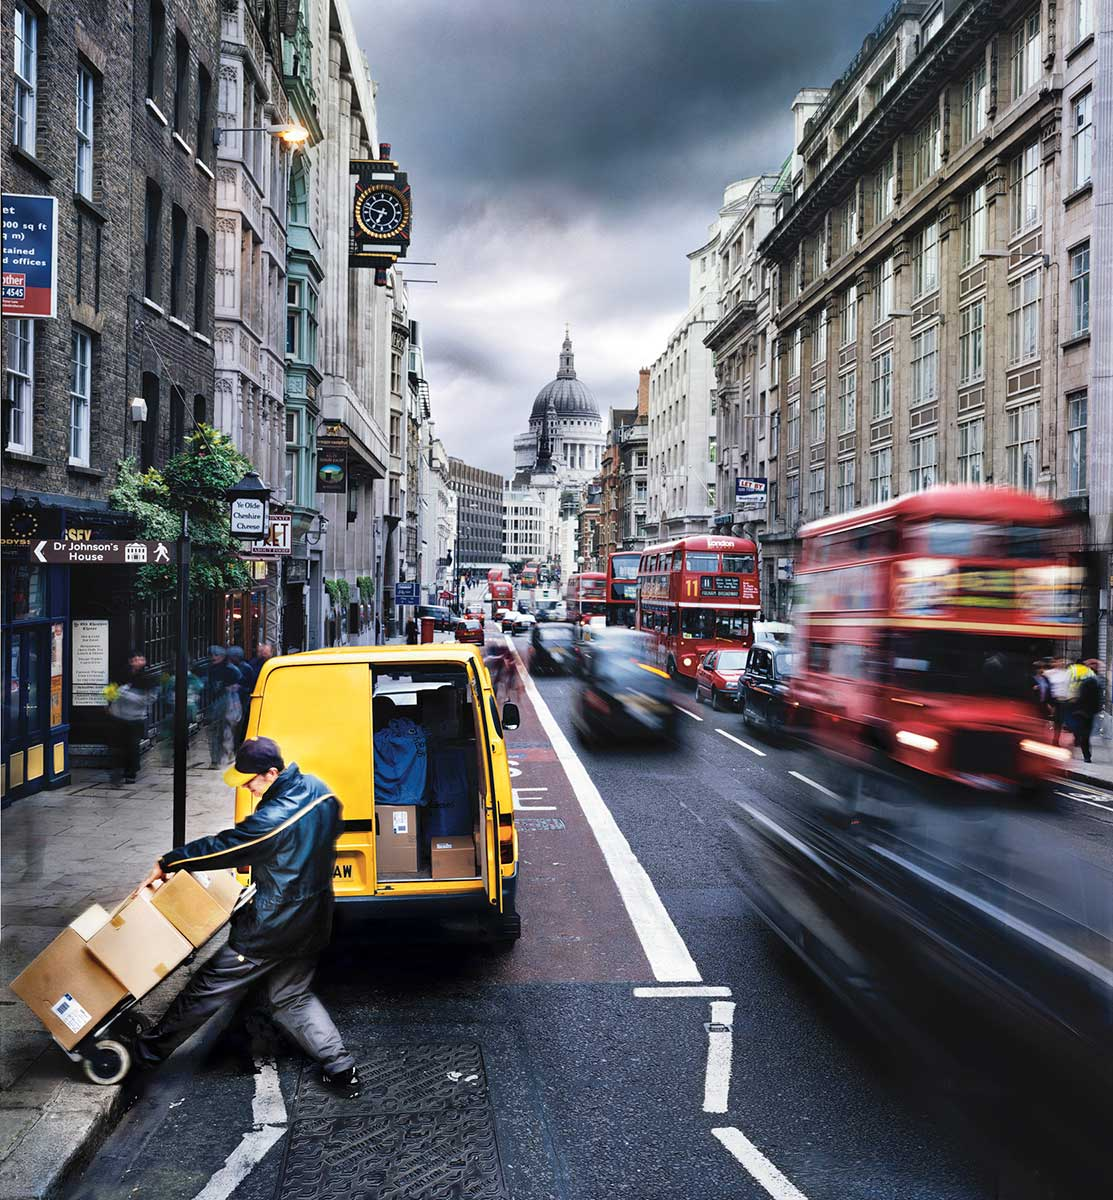 Swisspost_Intl._London